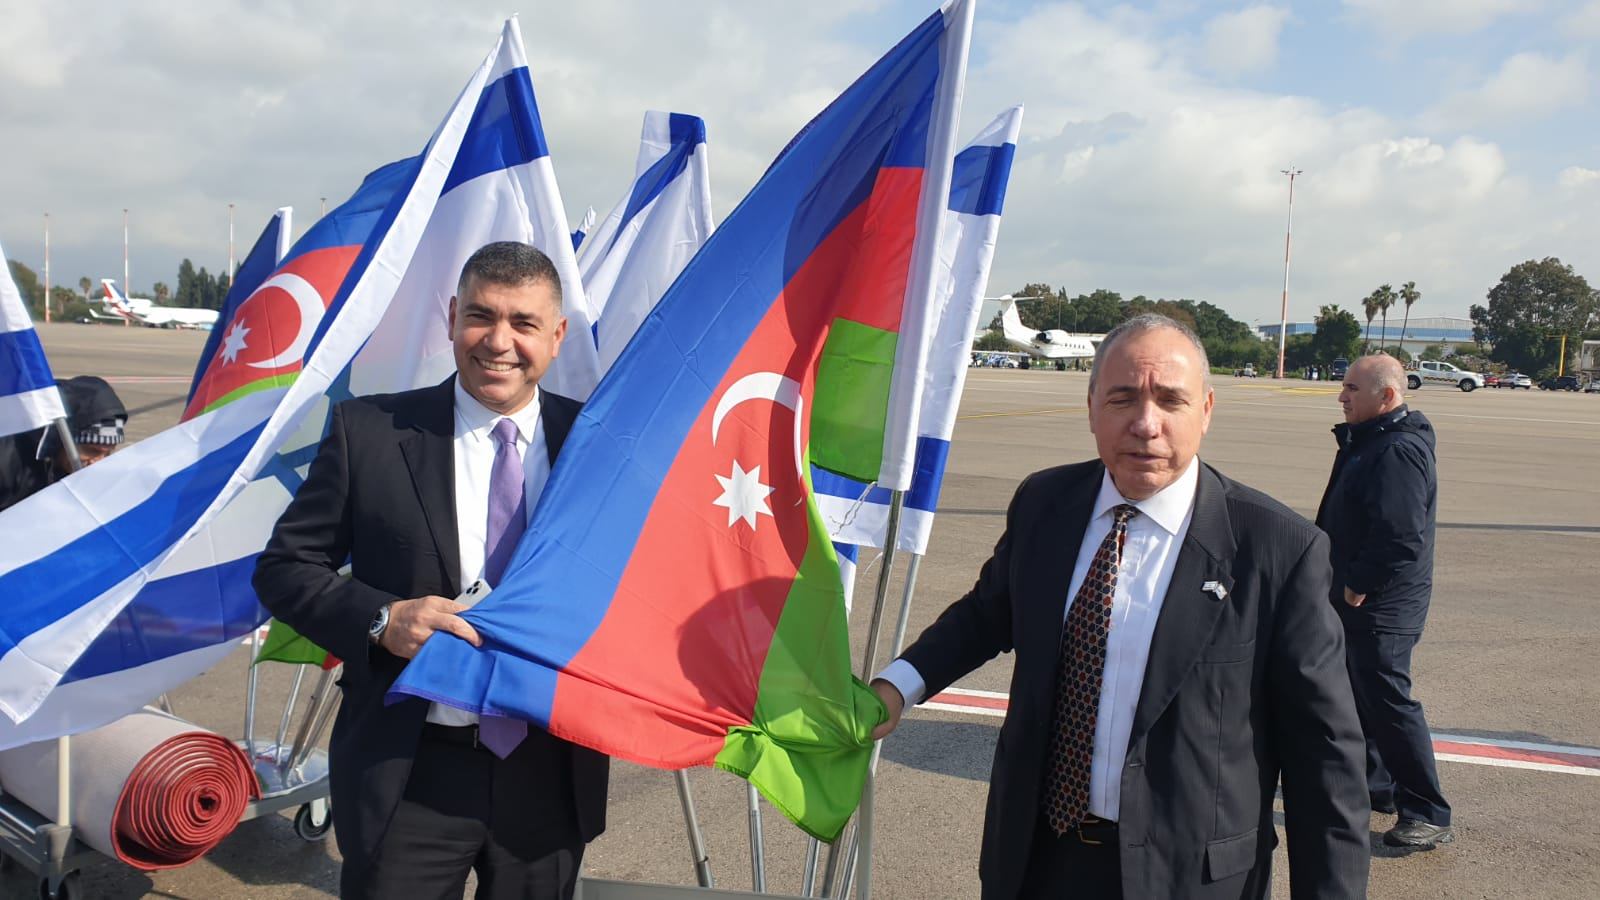 The flags are ready! The speaker of #Azerbaijan Parliament Mr Ogtay Asadov will soon land in Israel in a first ever visit , to take part in the World Holocaust Forum 2020 in Jerusalem.  The MFA Director General @Yuval_Rotem will receive him at the airport. https://t.co/9SLHahhmAL